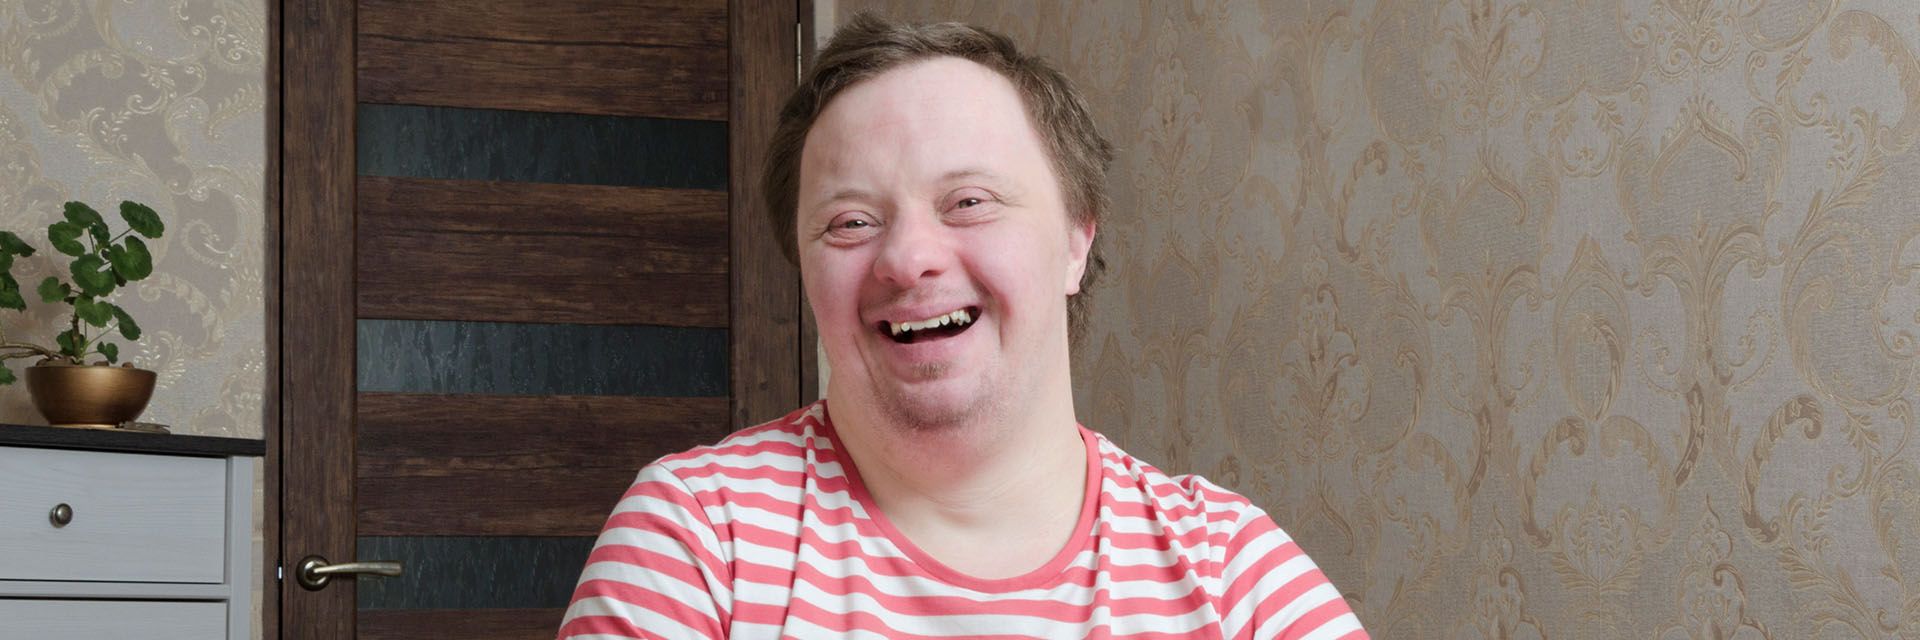 Man with Down syndrome smiling